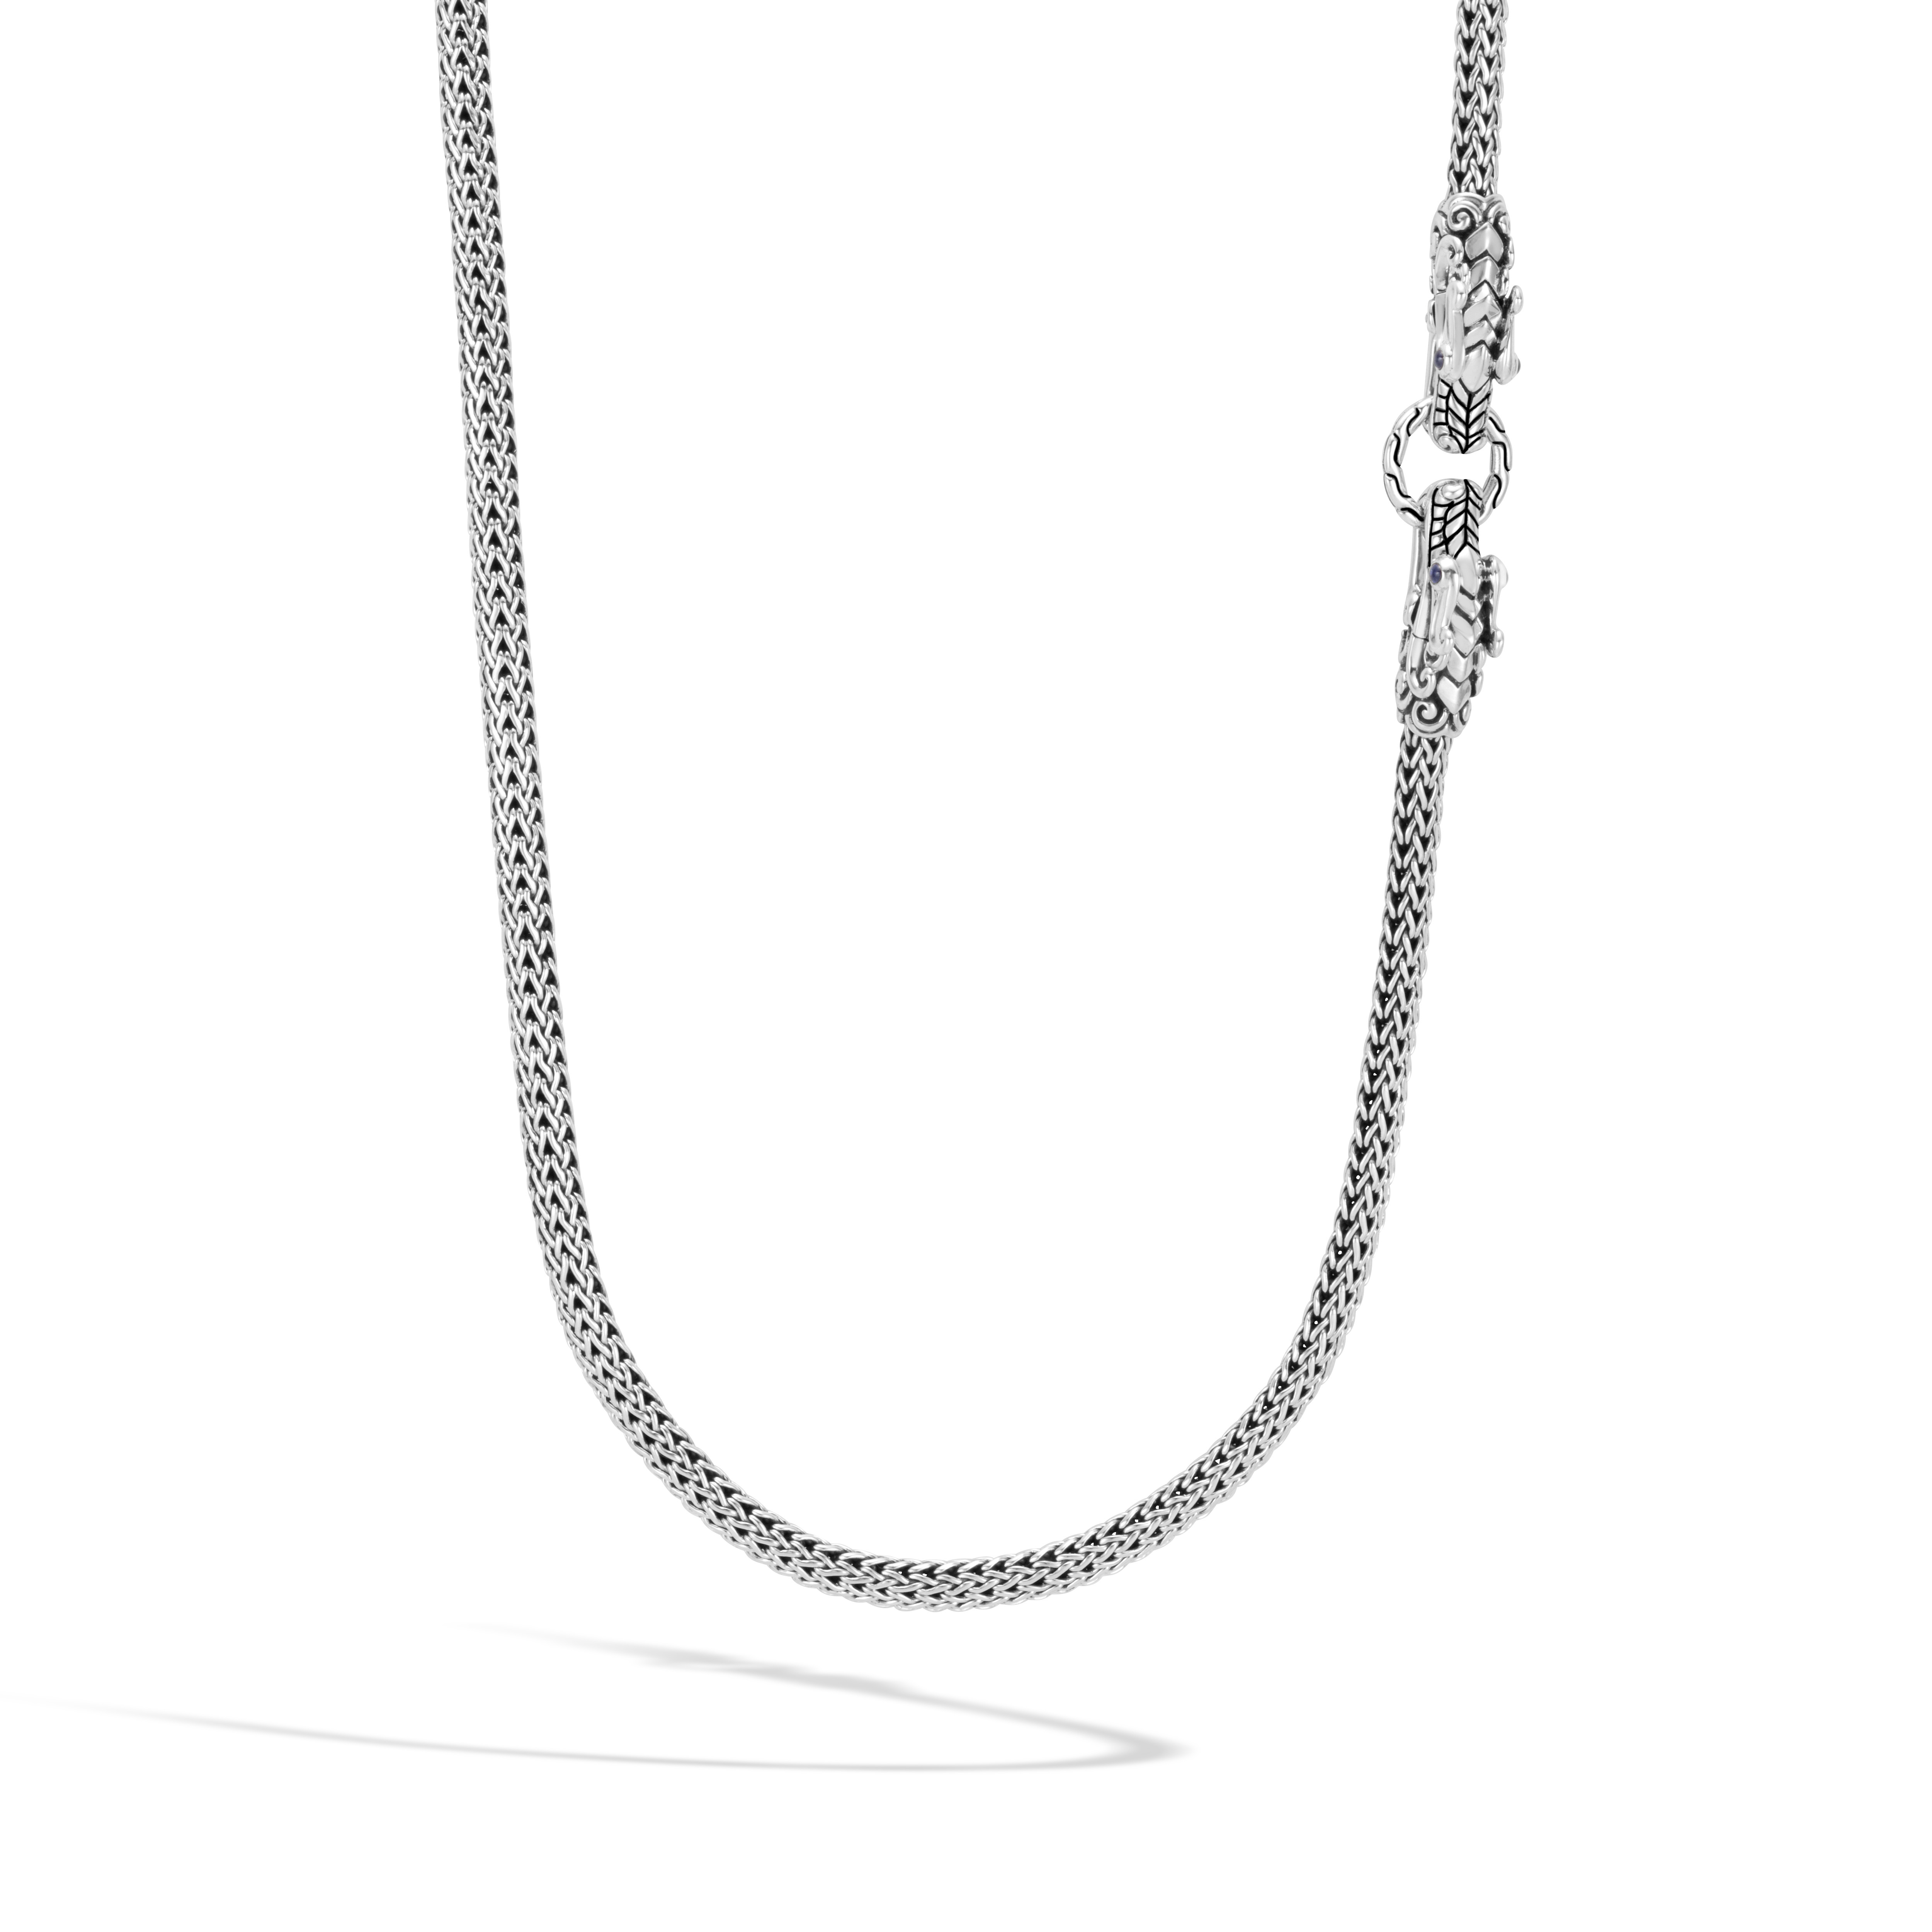 Legends Naga Long Necklace in Silver, , modelview